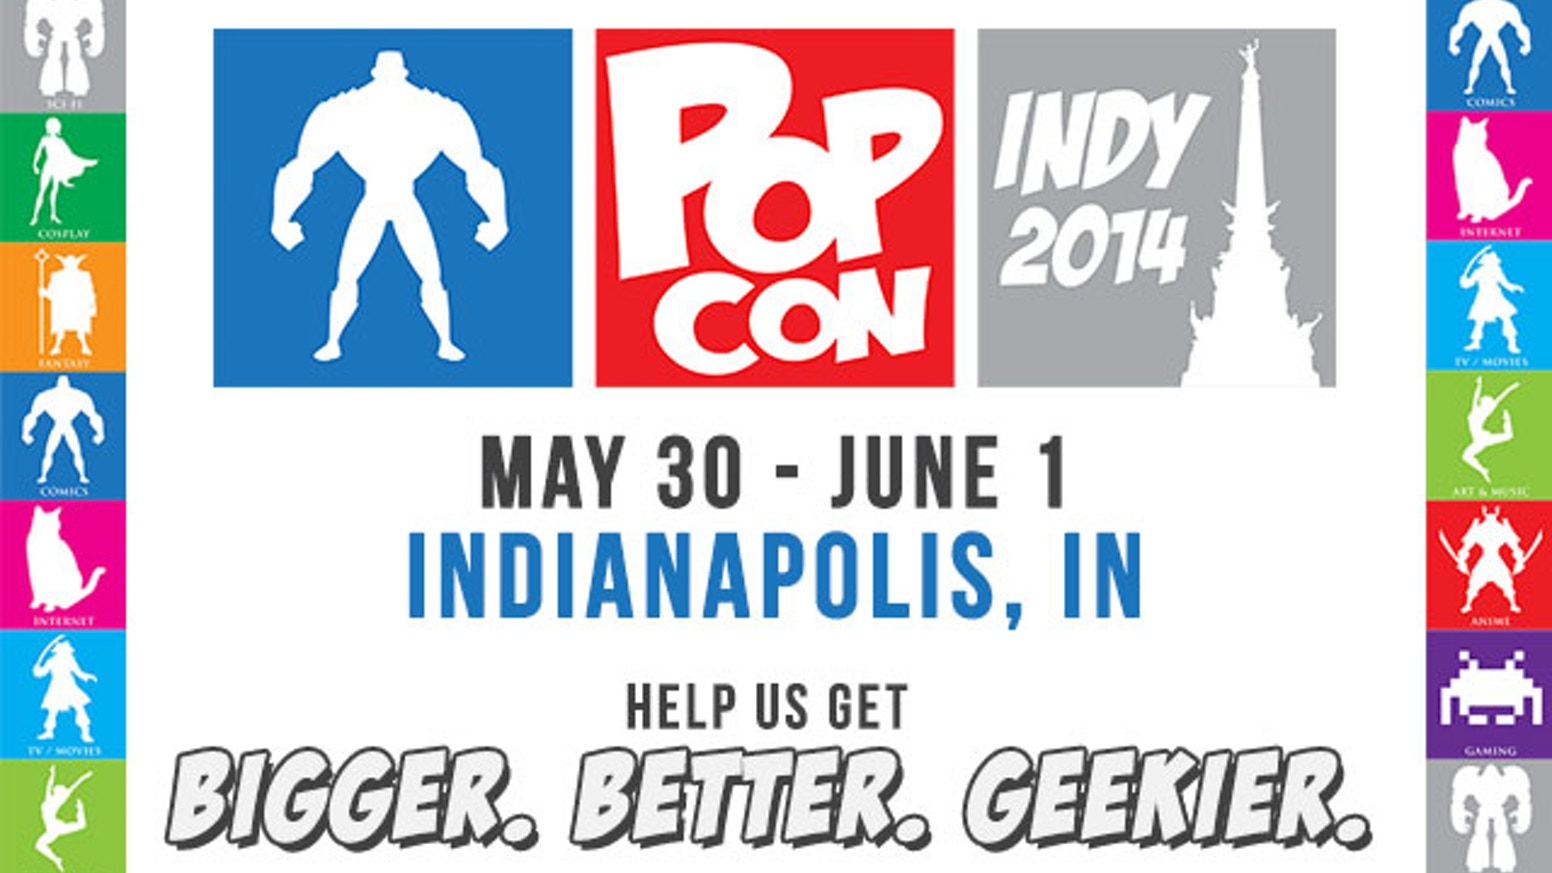 Indy PopCon 2014 - Comics, Gaming, Culture, and more! by Indy PopCon ...